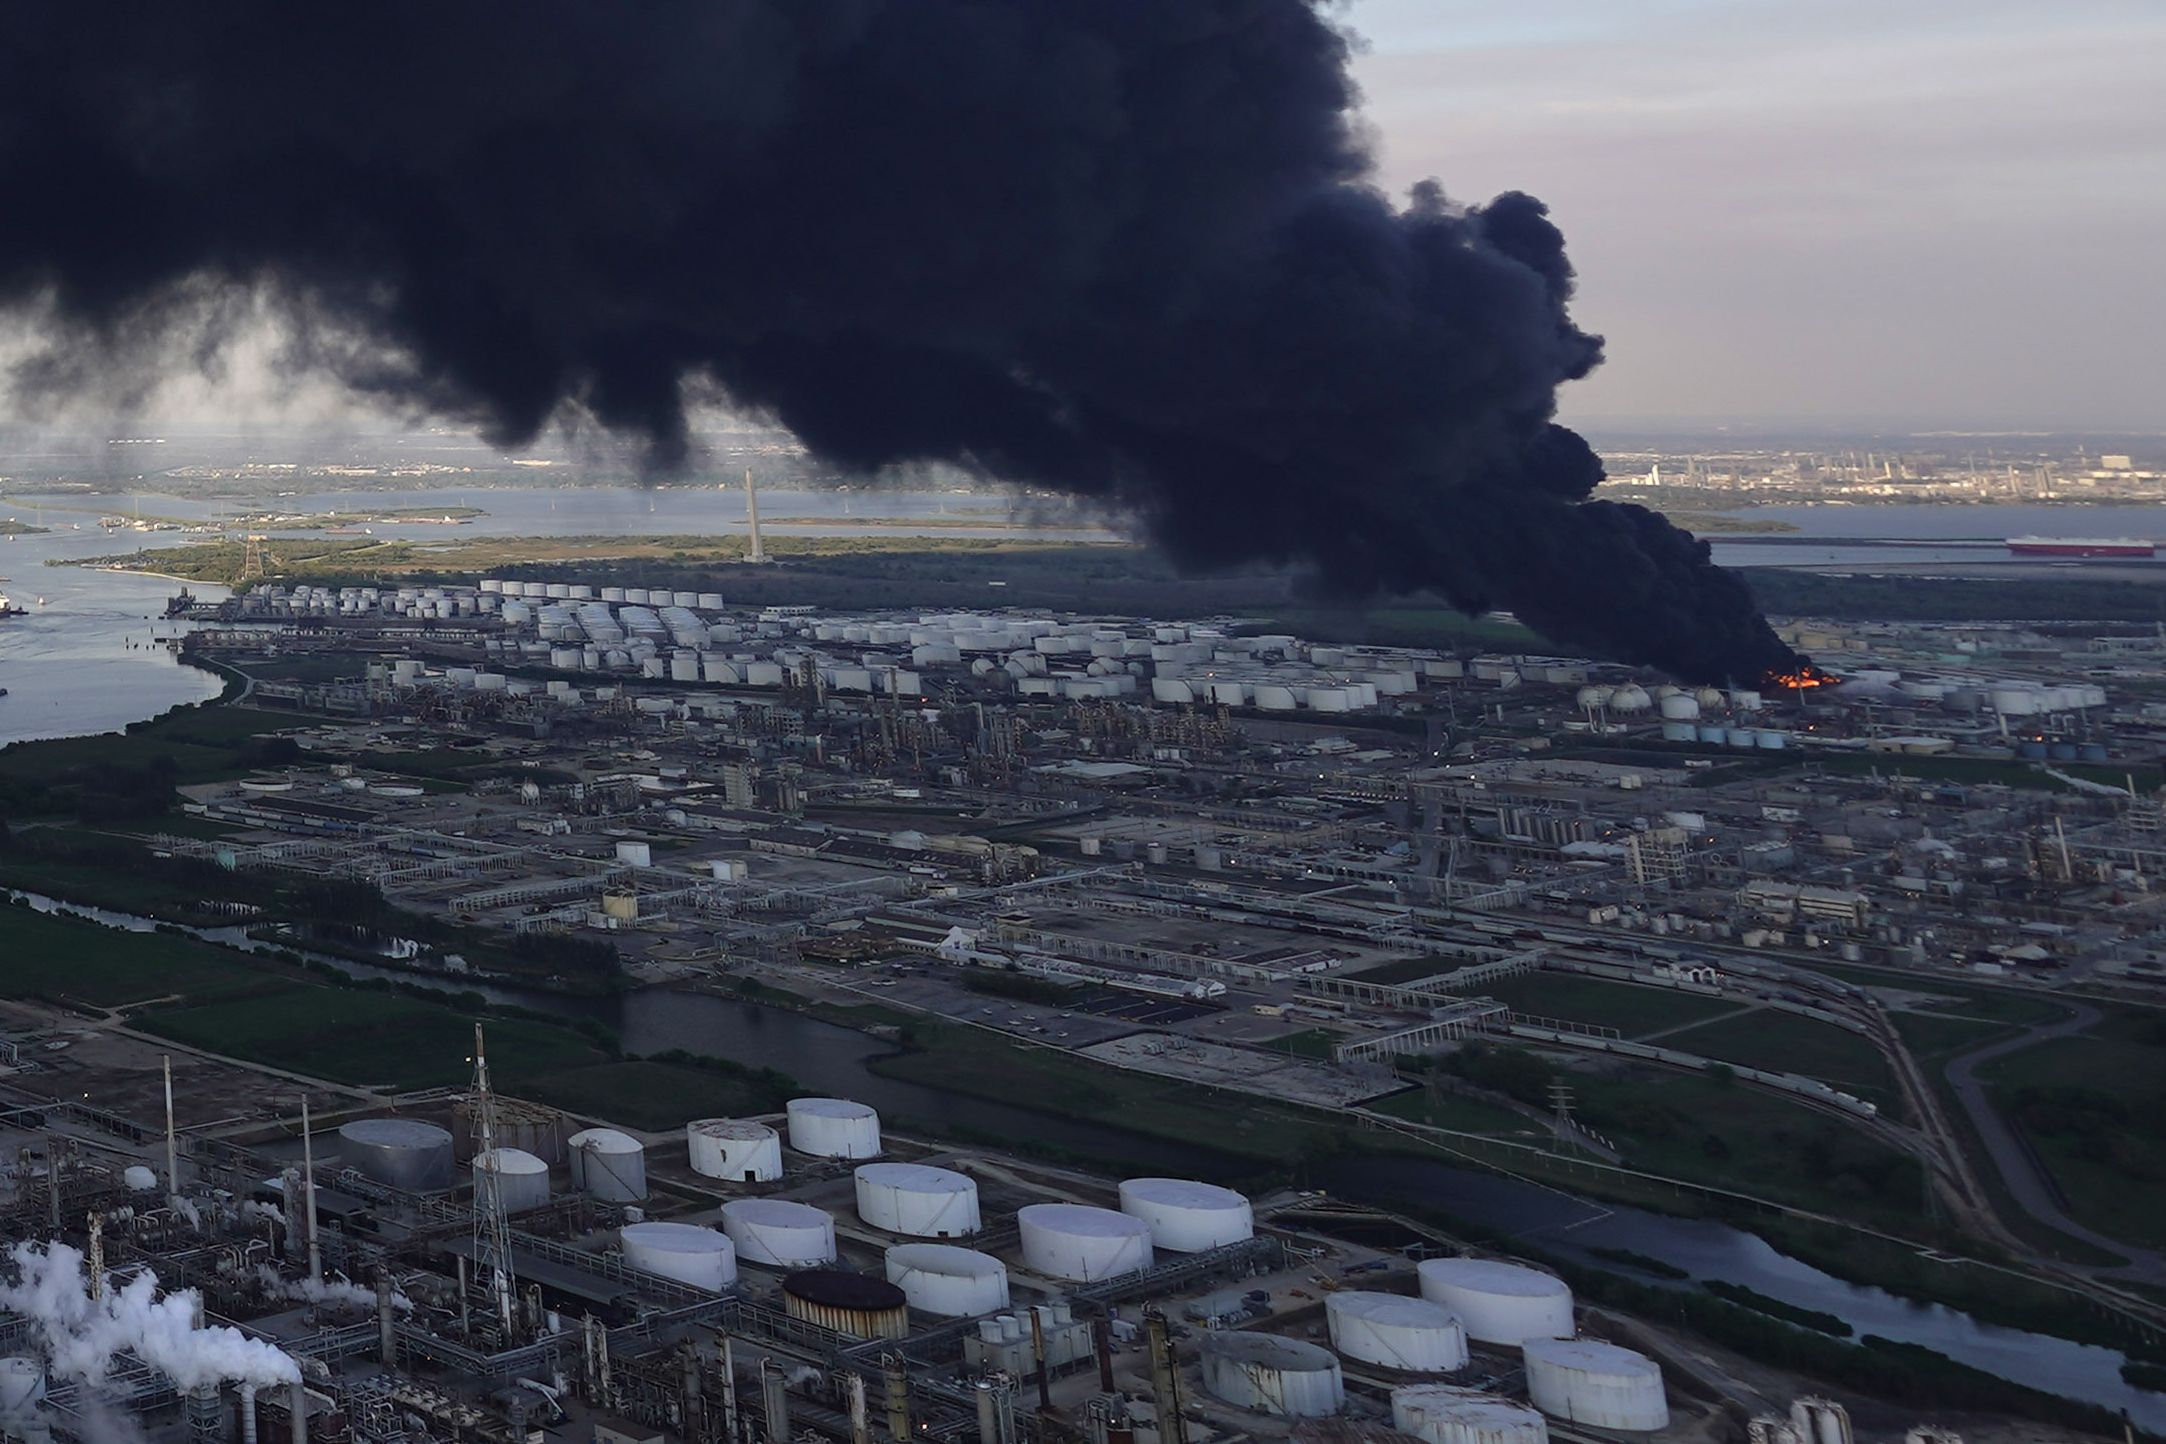 Blaze extinguished at Texas petrochemicals facility